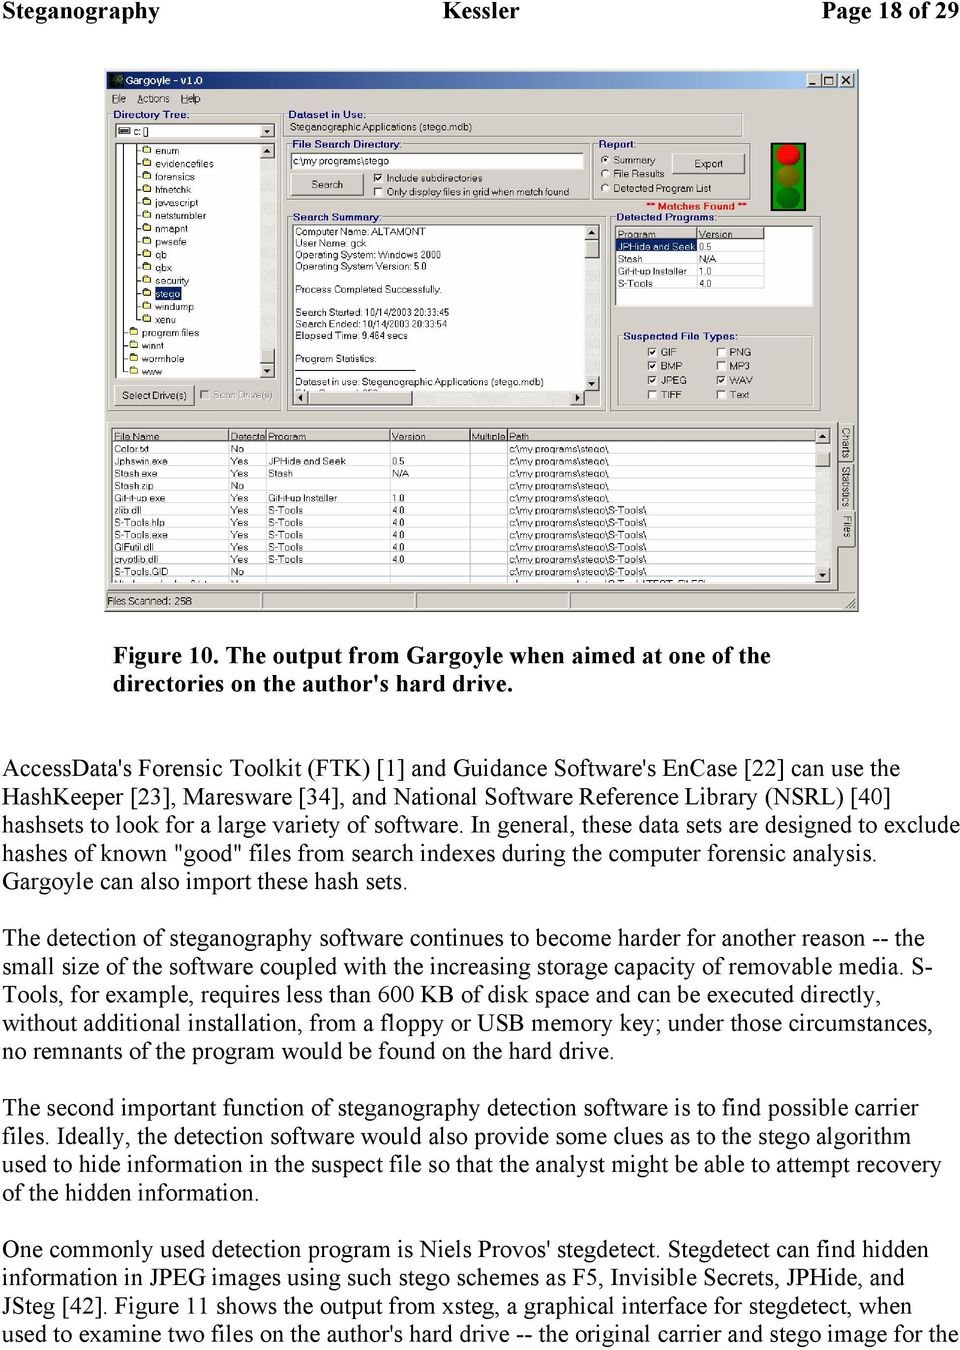 An Overview of Steganography for the Computer Forensics Examiner - PDF